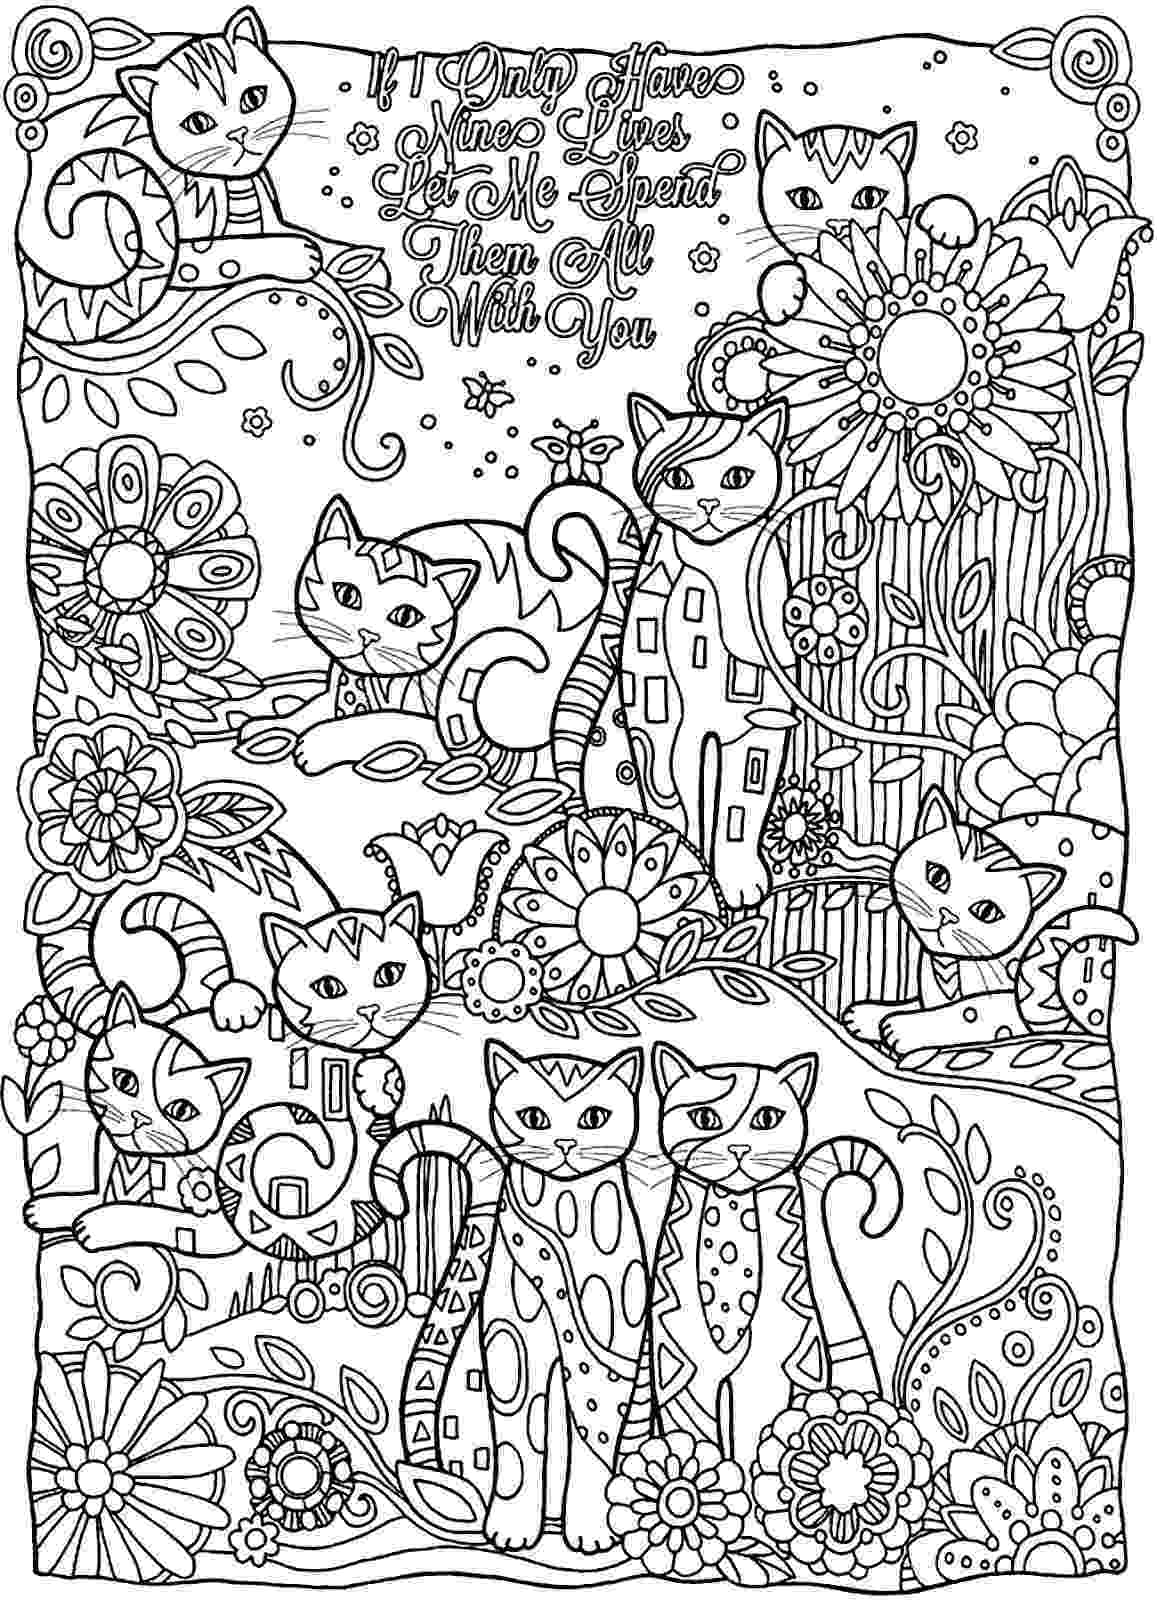 free online coloring pages for adults cats coloring page world if i only have nine lives let me online coloring cats pages adults for free